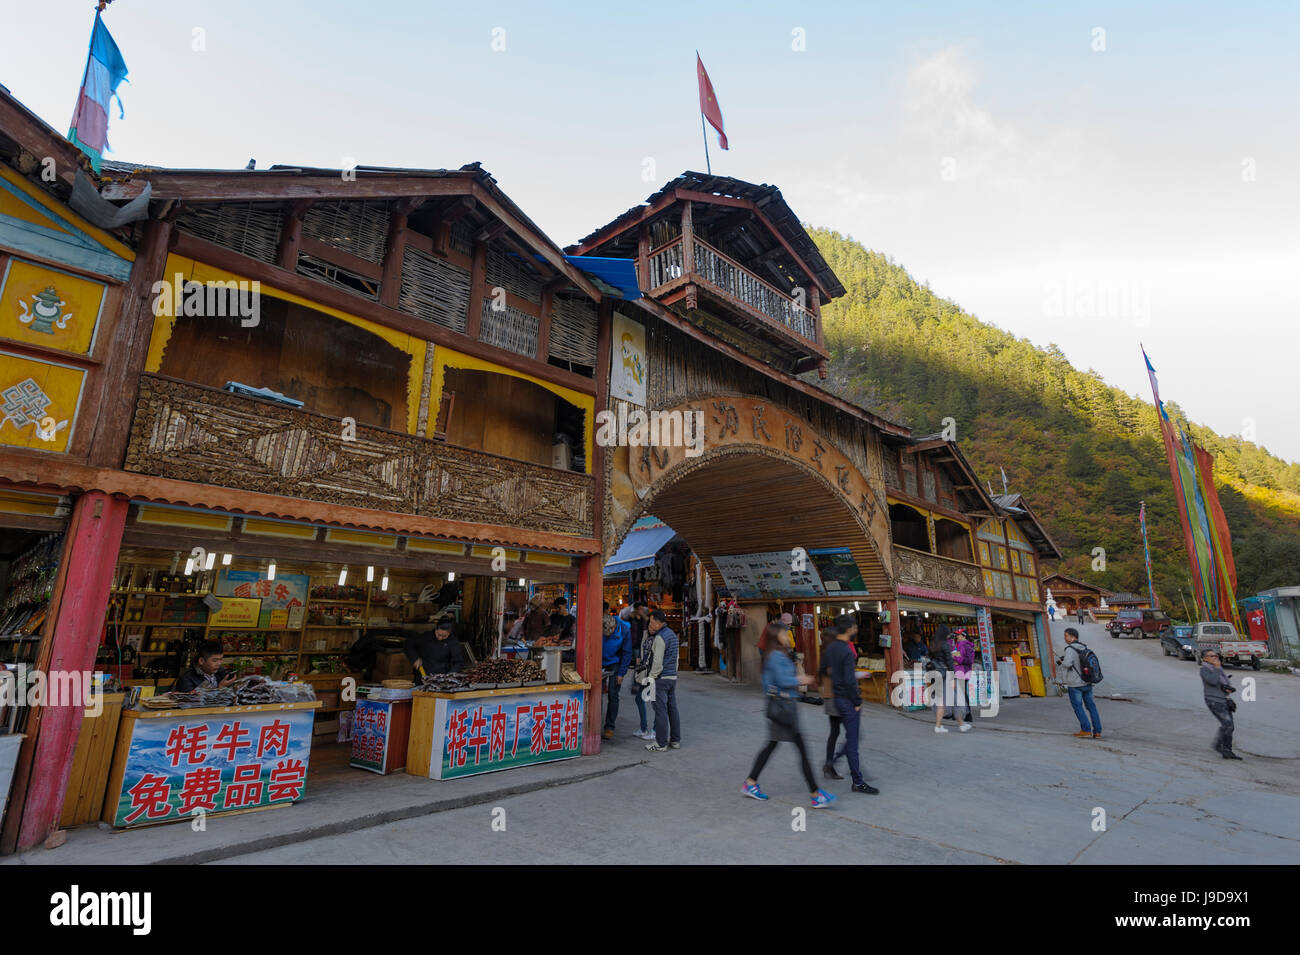 Tibetan Shop Stock Photos Amp Tibetan Shop Stock Images Alamy